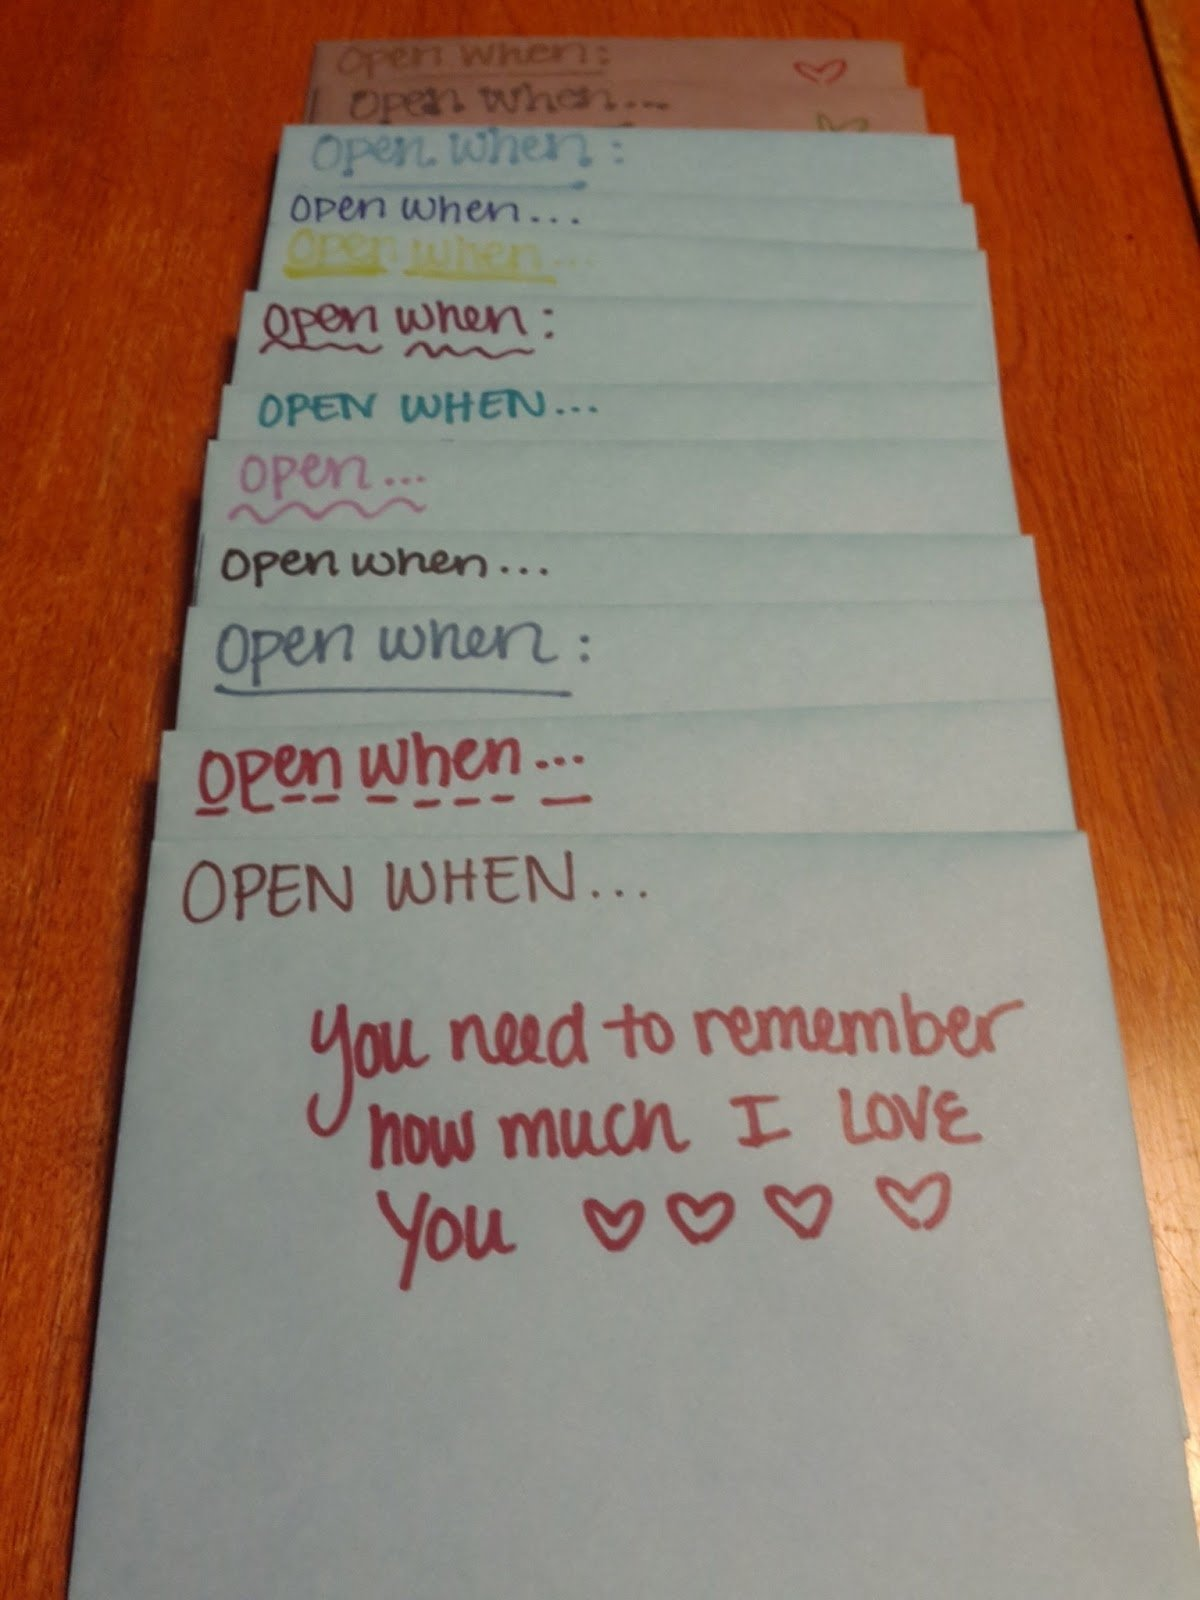 10 Spectacular Love Note Ideas For Him life love lauren open when follow up 2020